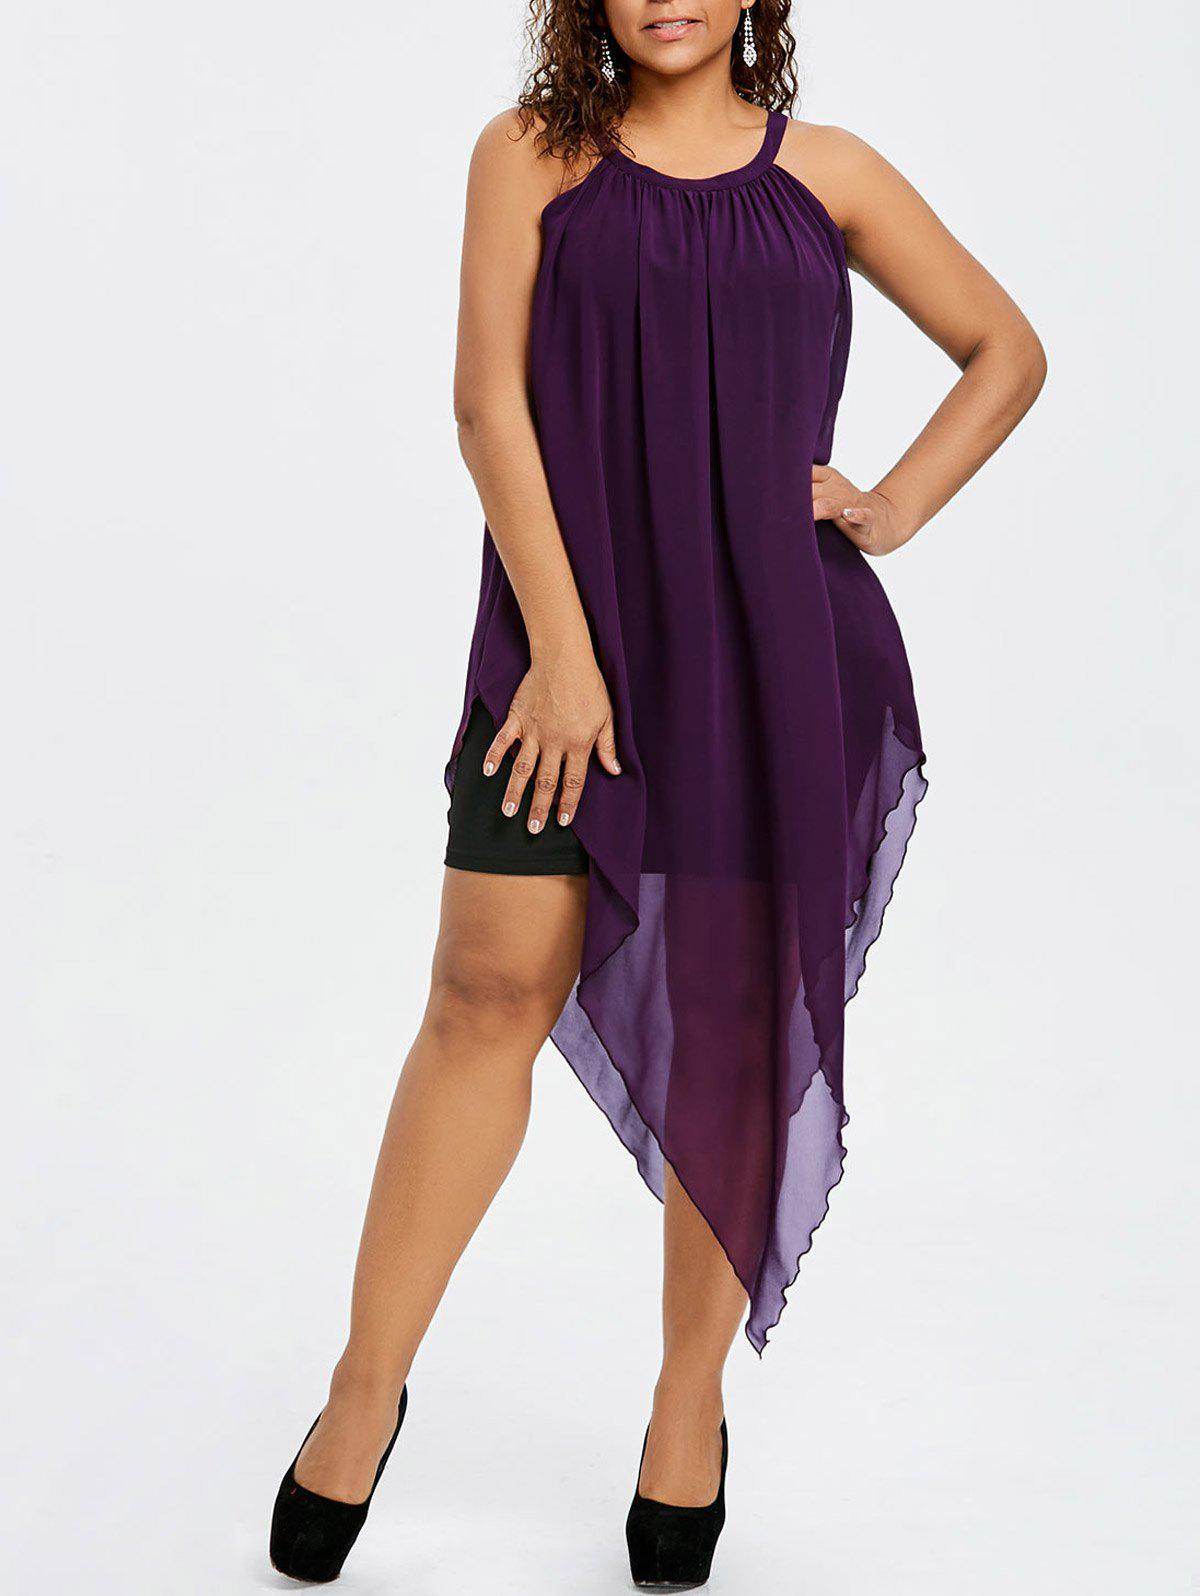 Plus Size Sleeveless Flowing Asymmetric Chiffon Dress - PURPLE 2XL